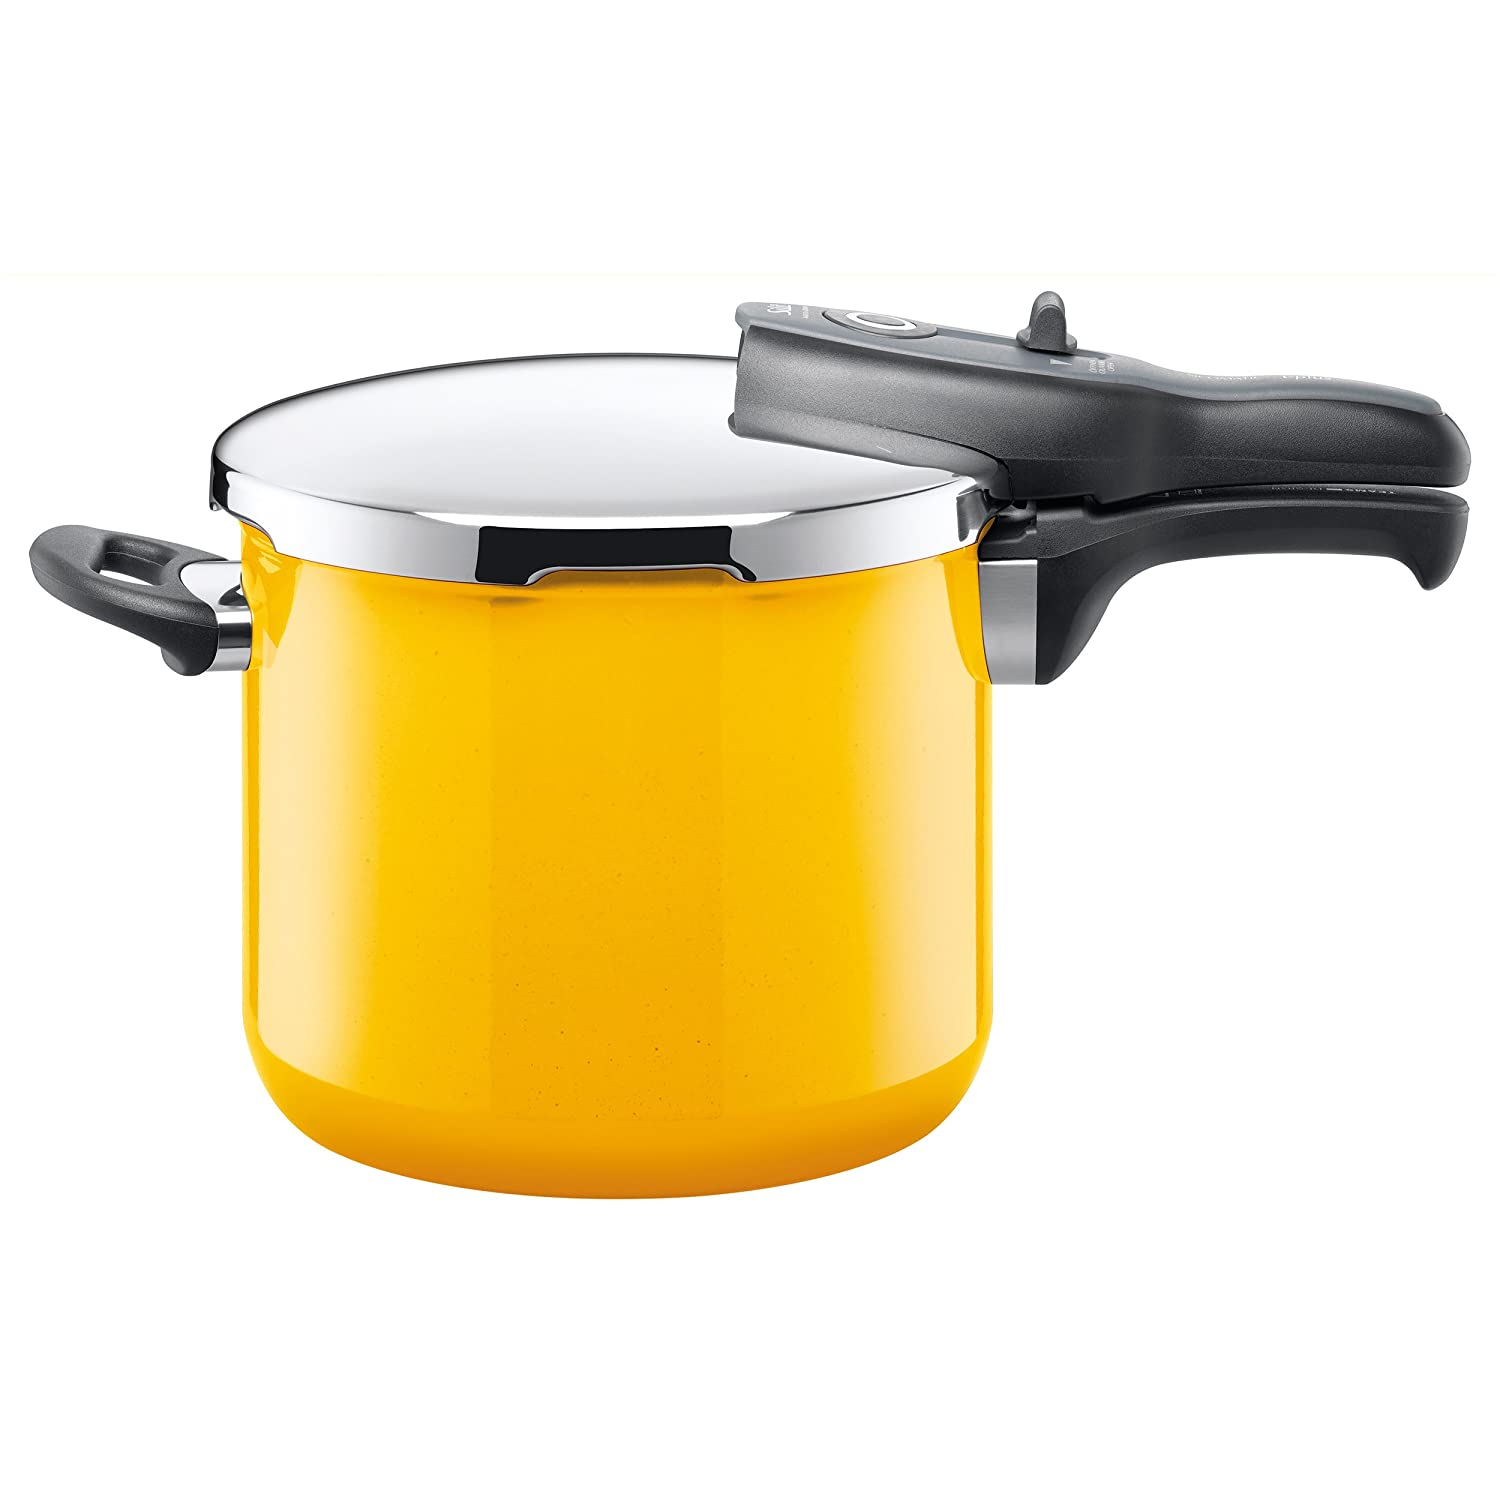 Silit Sicomatic t-plus pressure cooker, without insert, 6.5l, Silargan, Crazy Yellow, also suitable for induction, 8207173314